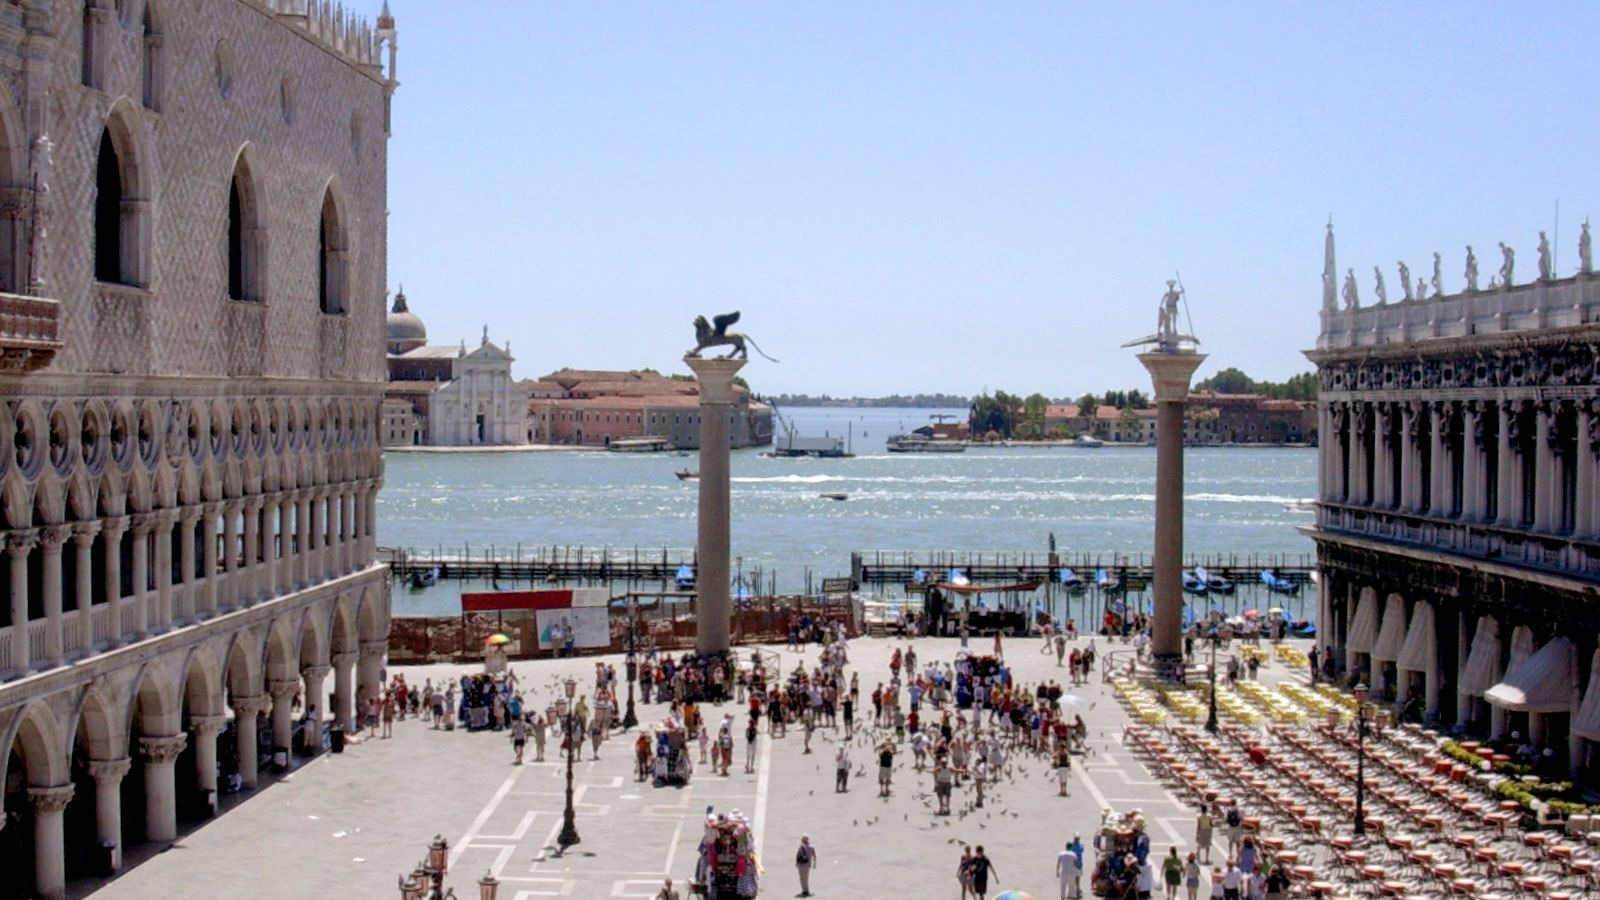 City view on Easy Venice tour in Italy